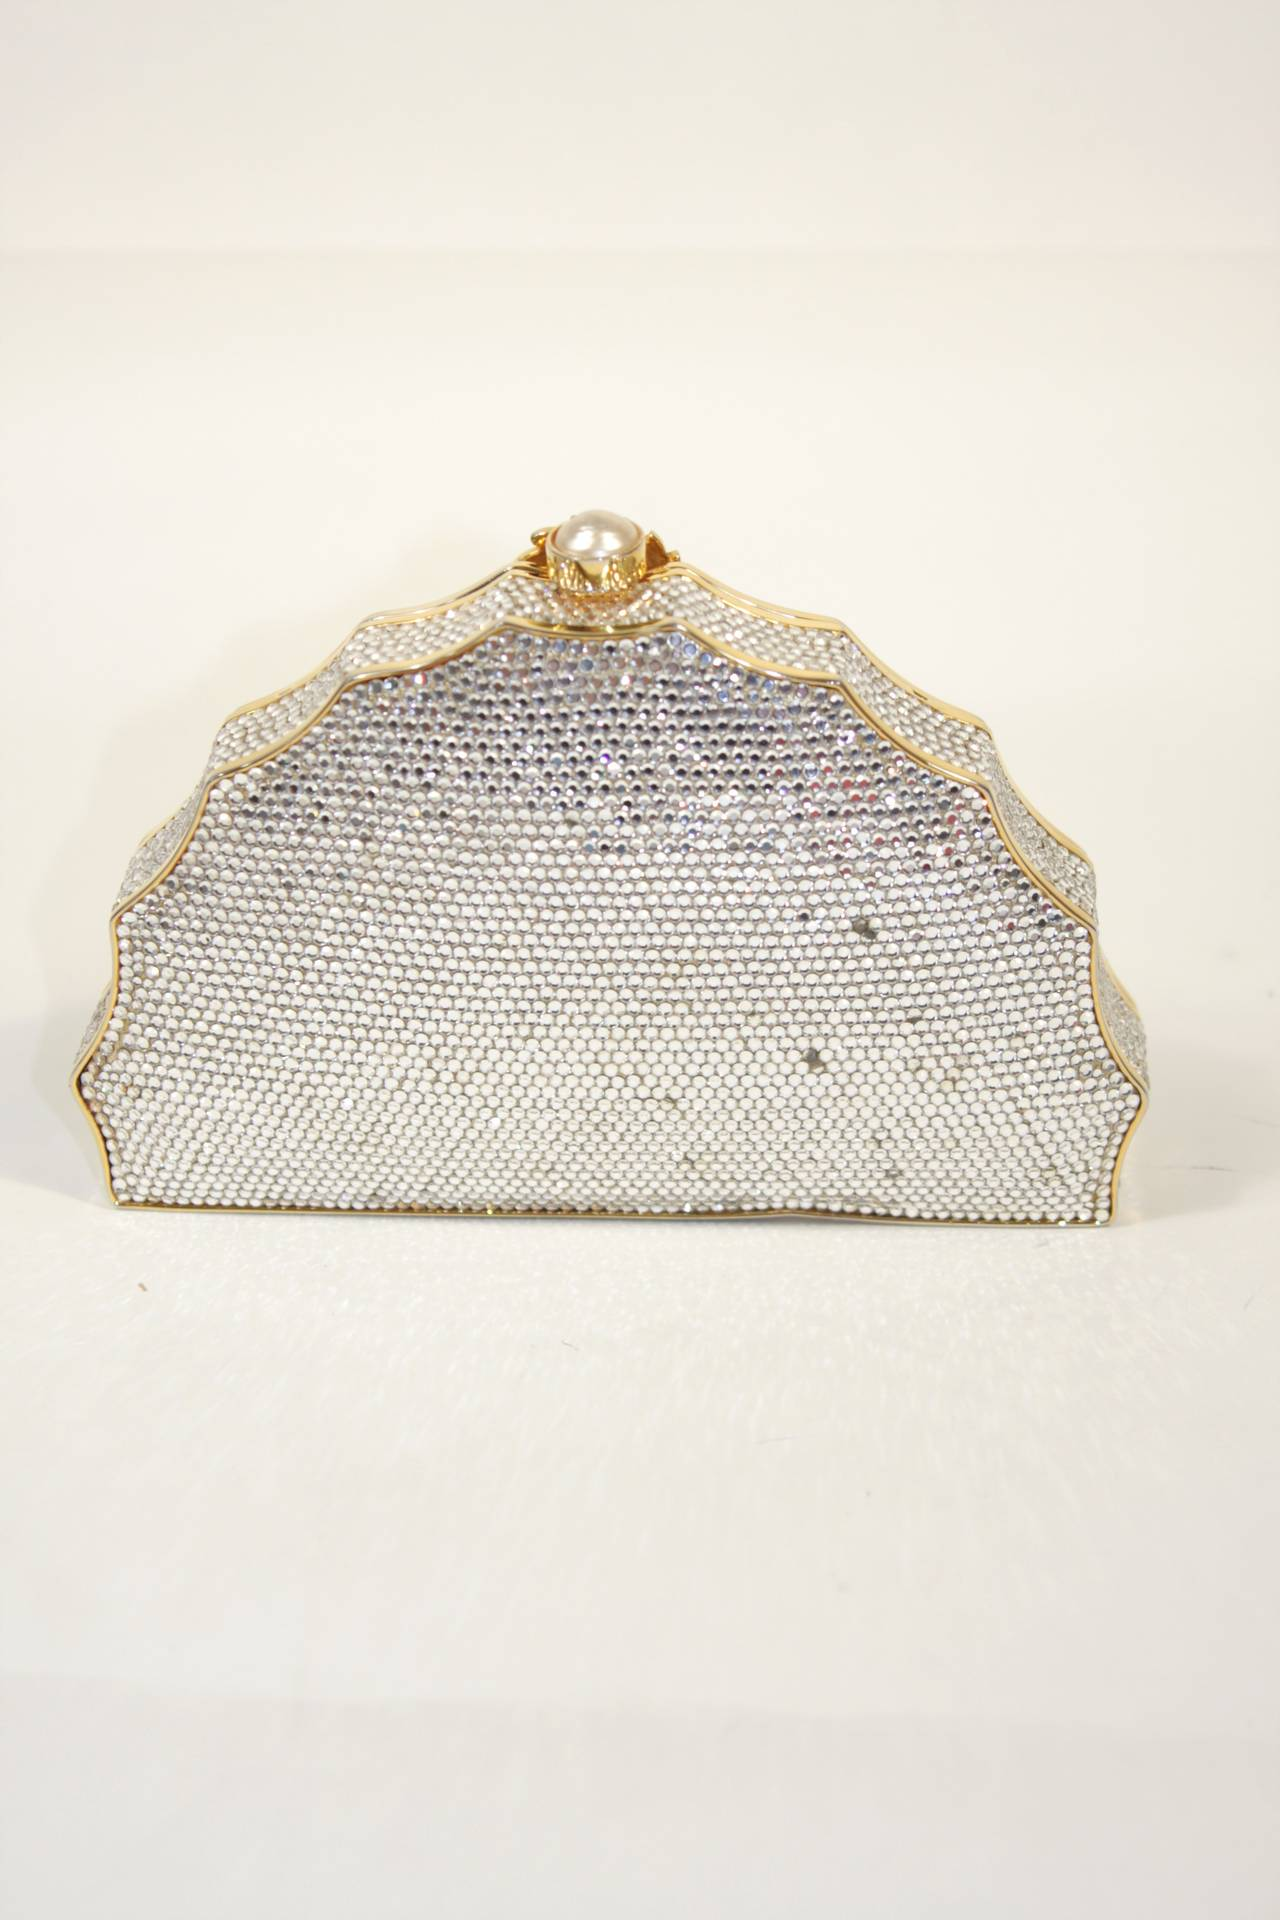 JUDITH LEIBER Classic Pave Rhinestone Minaudiare  with Chain Strap & Gold Detail For Sale 2